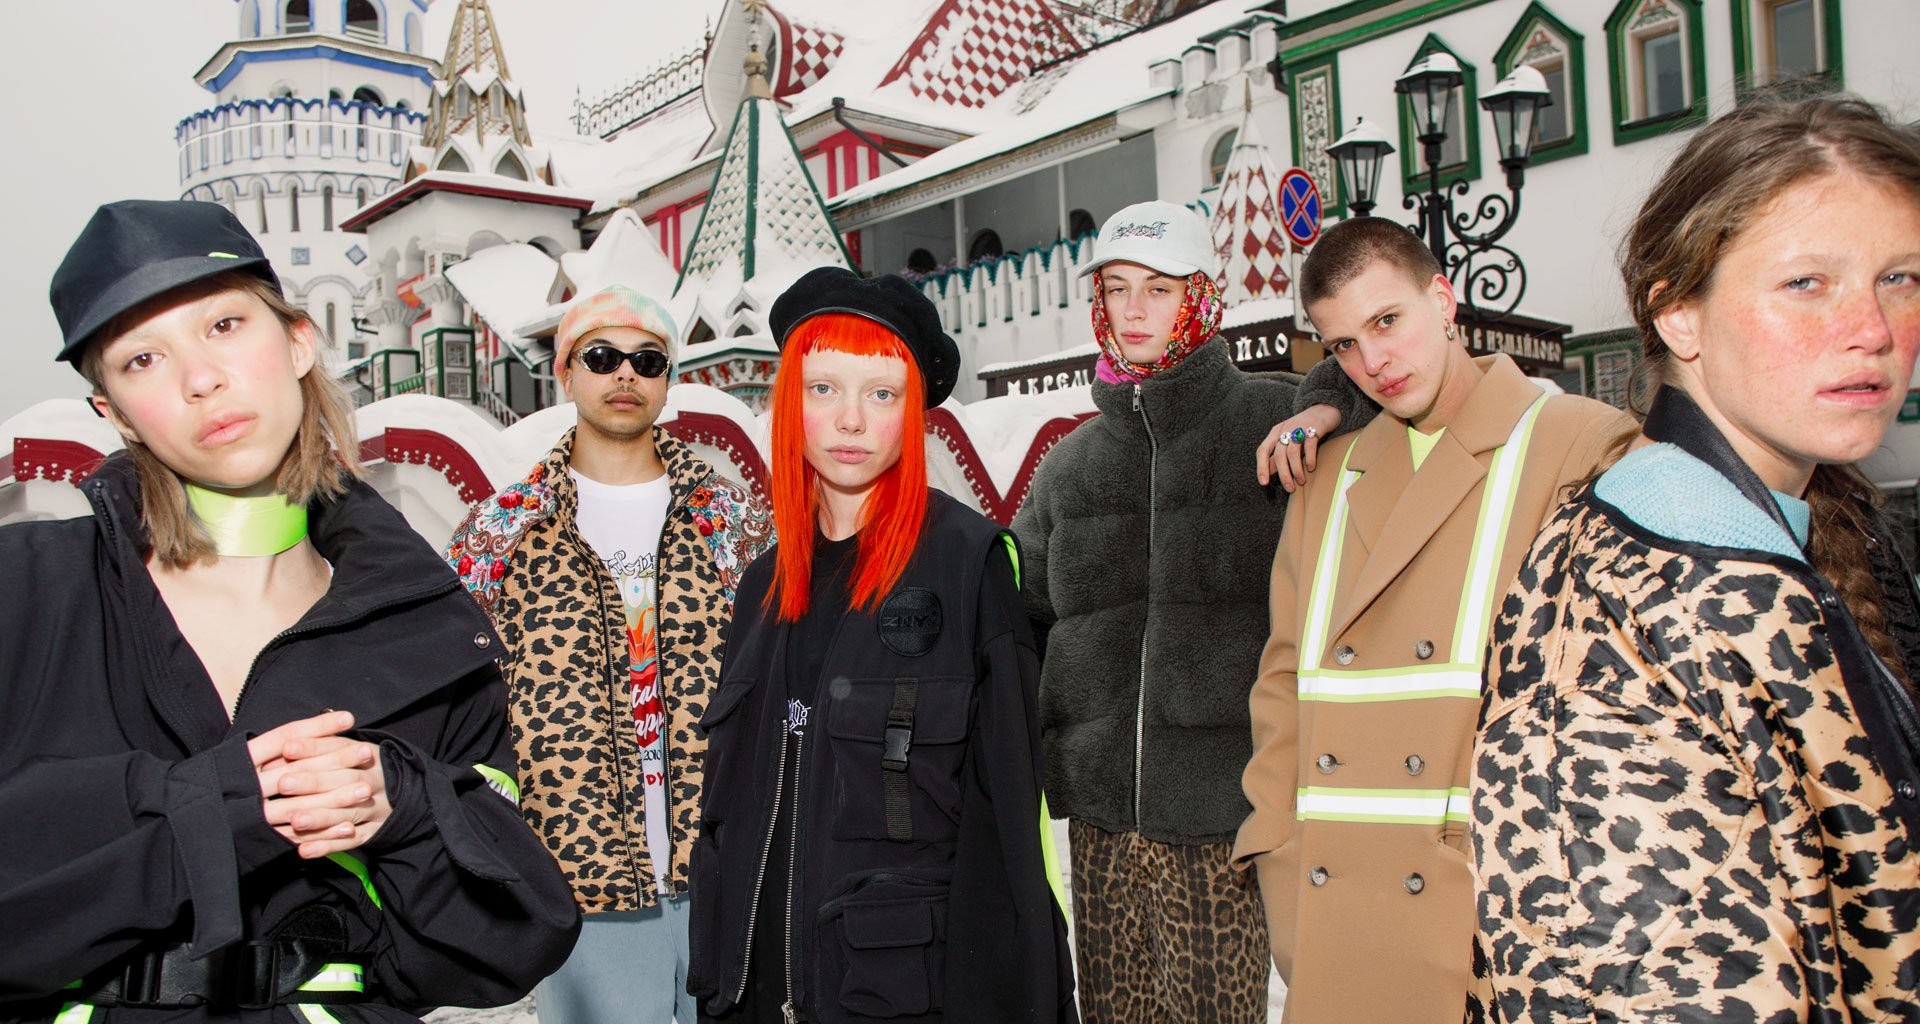 5 Eastern European streetwear brands you need to know